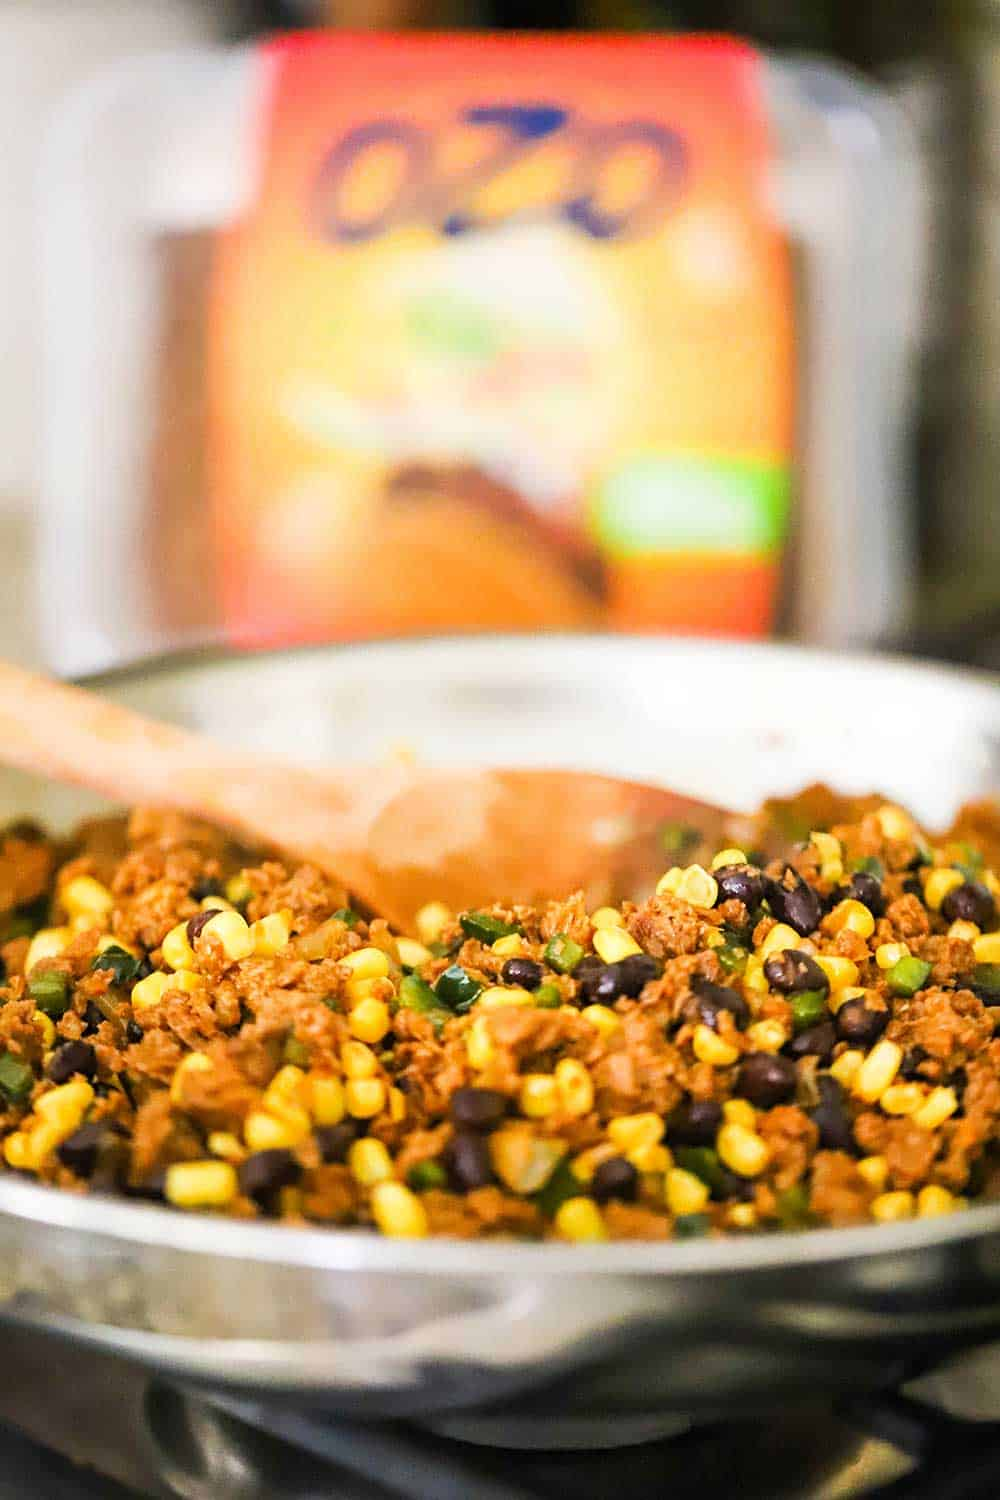 A stainless steel skillet filled with ground plant-based protein and black beans and corn.